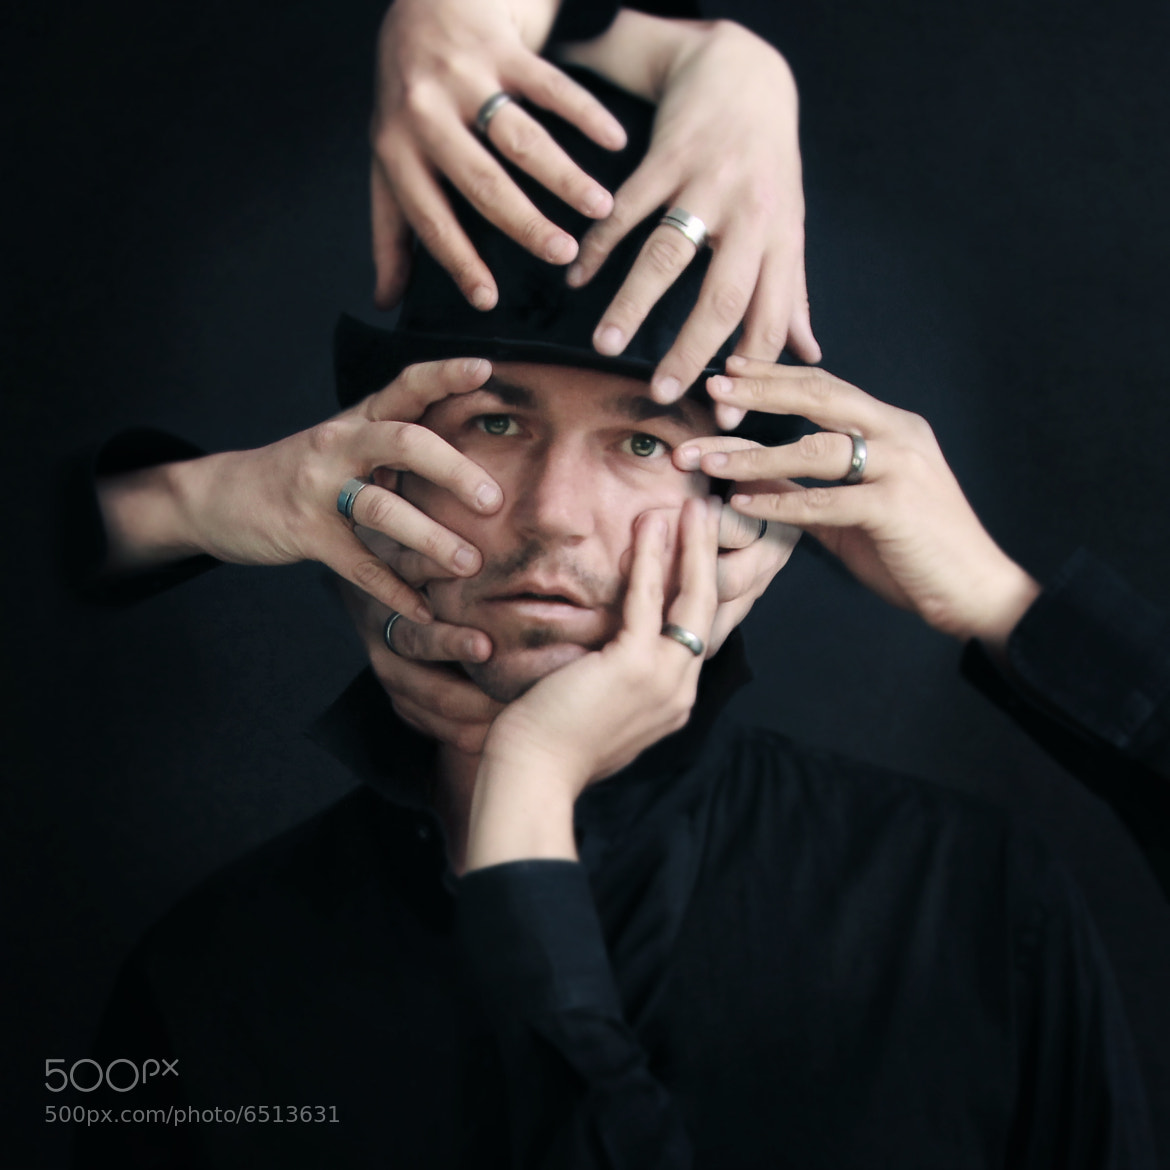 Photograph Skin by Shawn Van Daele on 500px